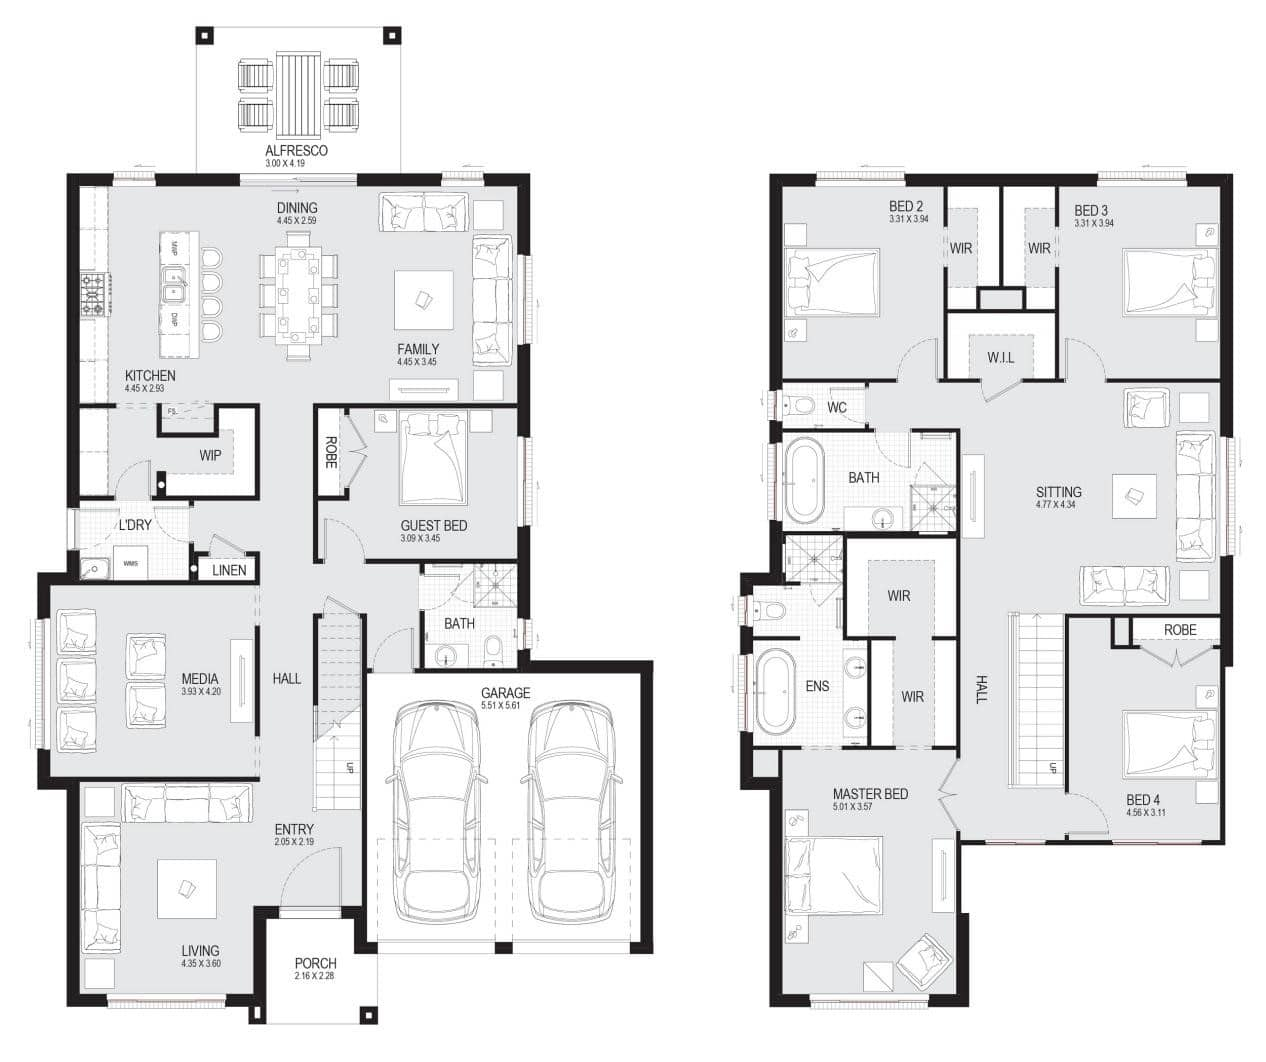 Plan for Standard 5 bedroom Apartment 5 - 5-bedroom House Designs [with Pictures]